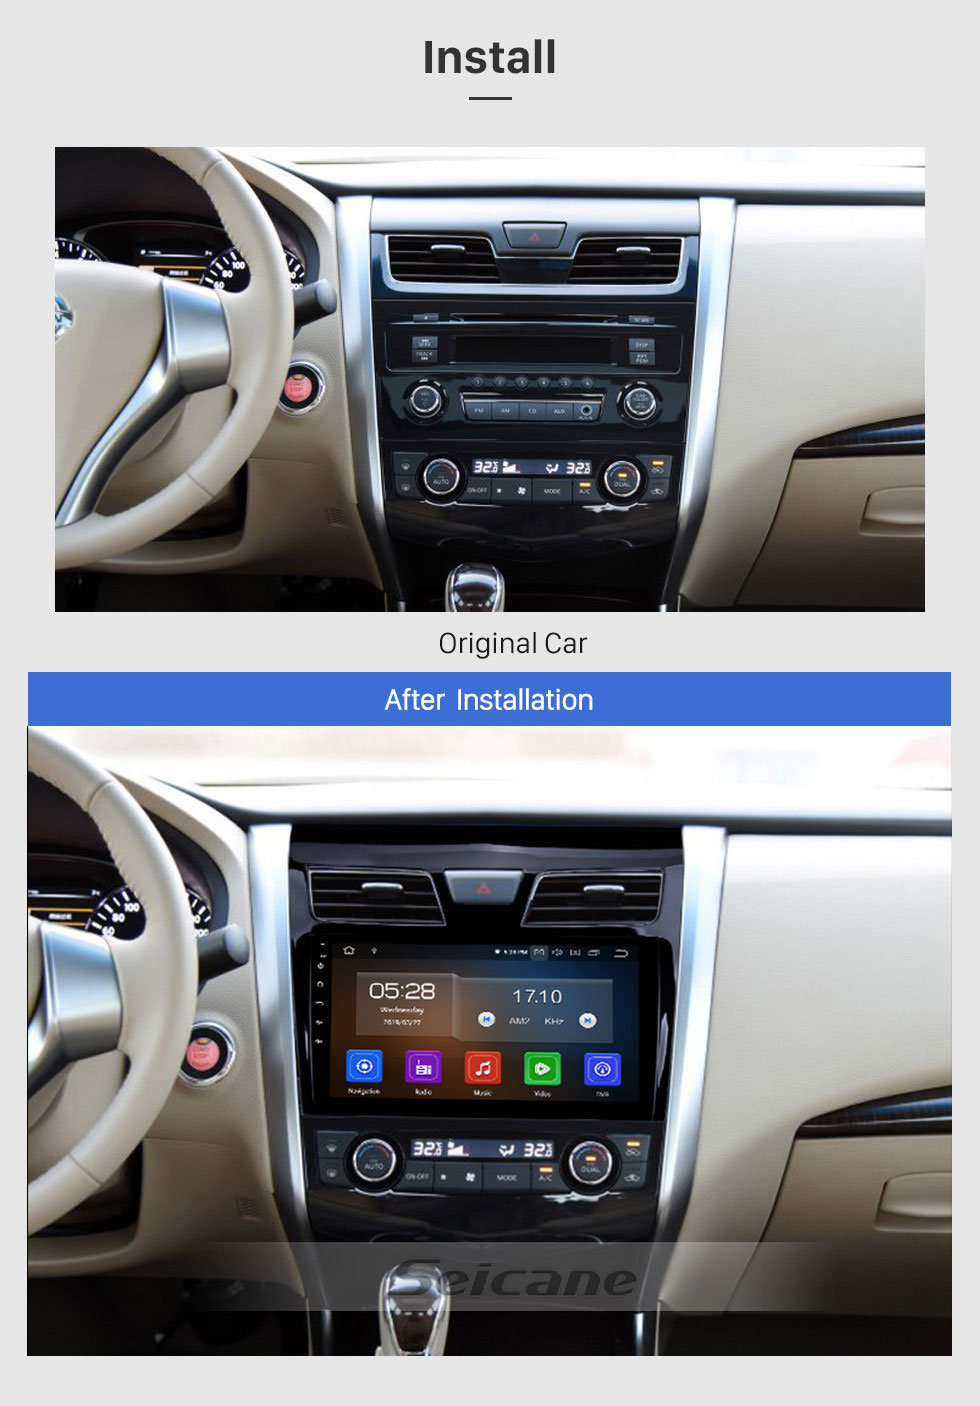 Seicane 9 inch  Android 9.0 2013 2014 2015 2016 2017 NISSAN TEANA Bluetooth GPS Navigation System with HDTouch Screen 3G WiFi  AUX Steering Wheel Control USB 1080P support TPMS DVR OBDII Rear Camera